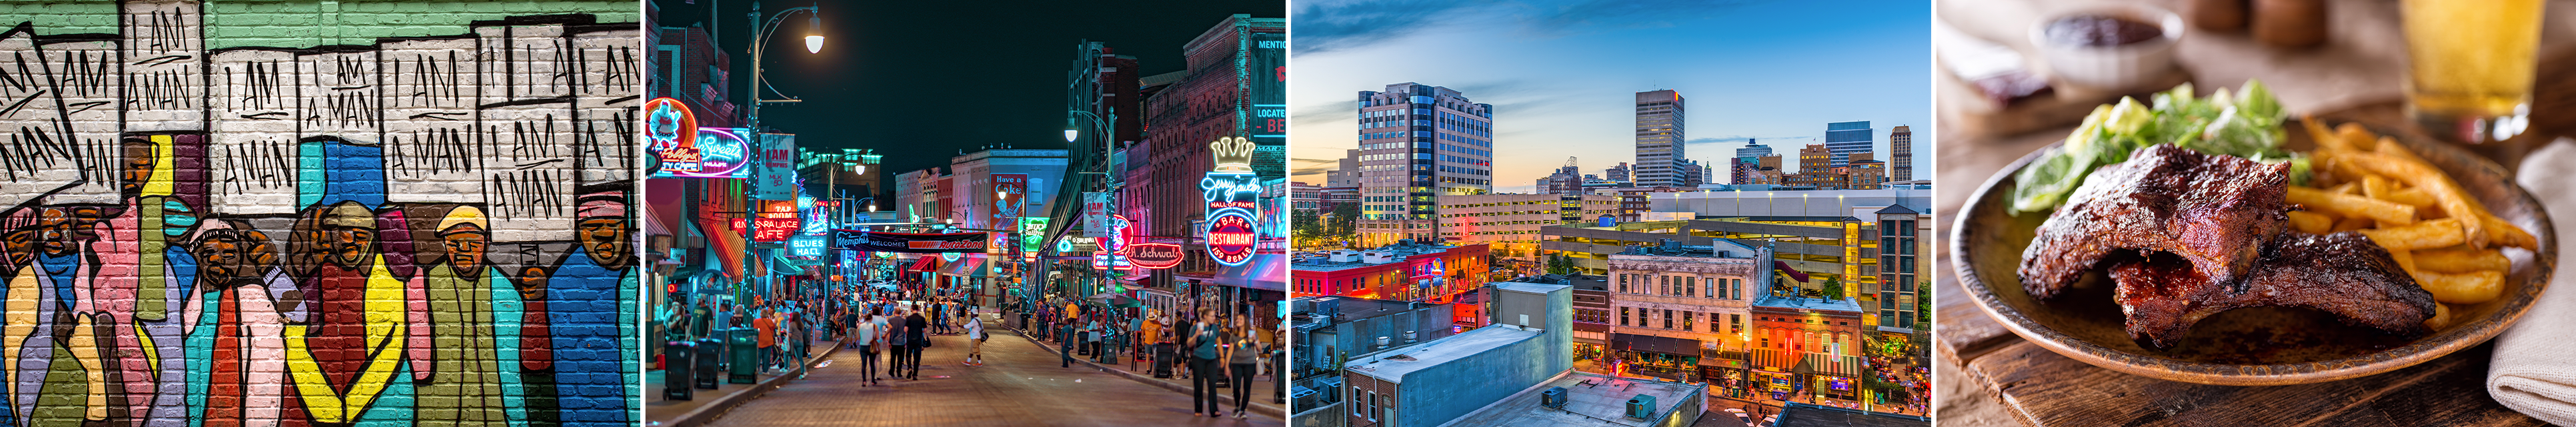 A collage of Memphis pictures including Beale Street at night, a plate of barbecue ribs, a local mural, and a view of the cityscape